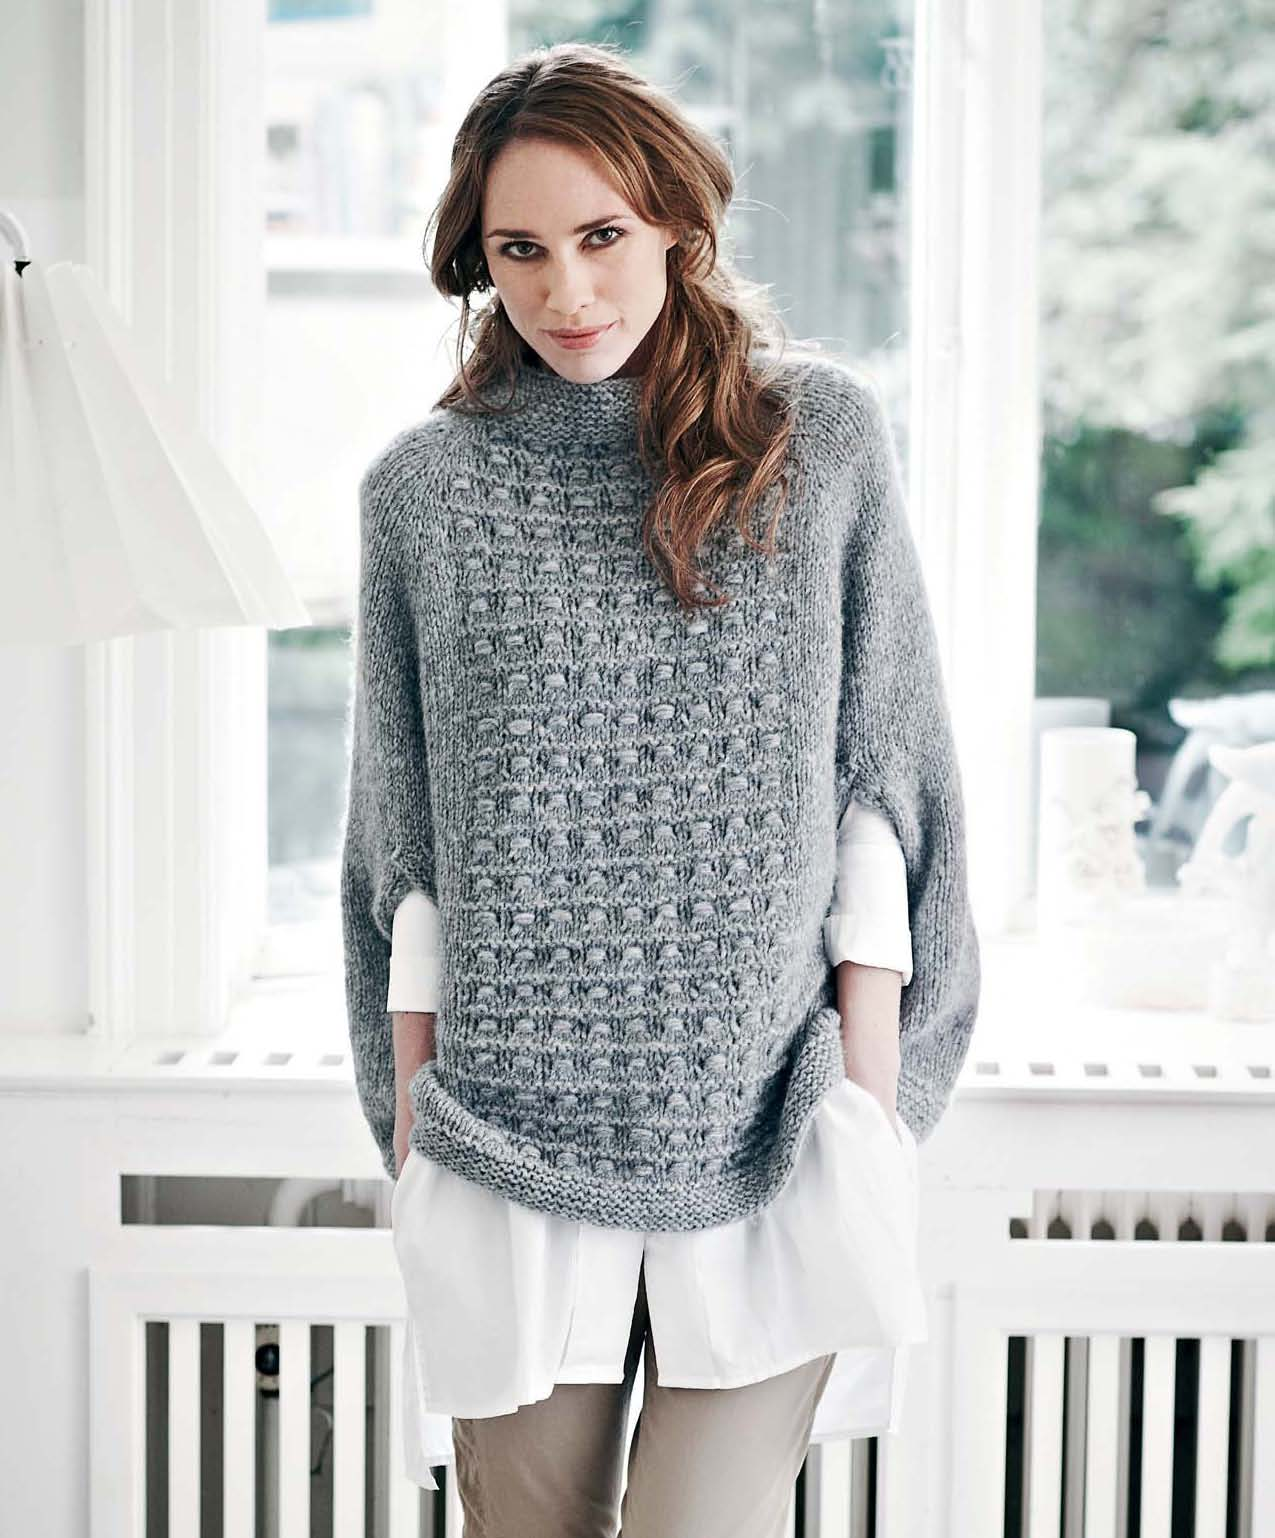 Perfectly Feminine Knits - Ella beauty image